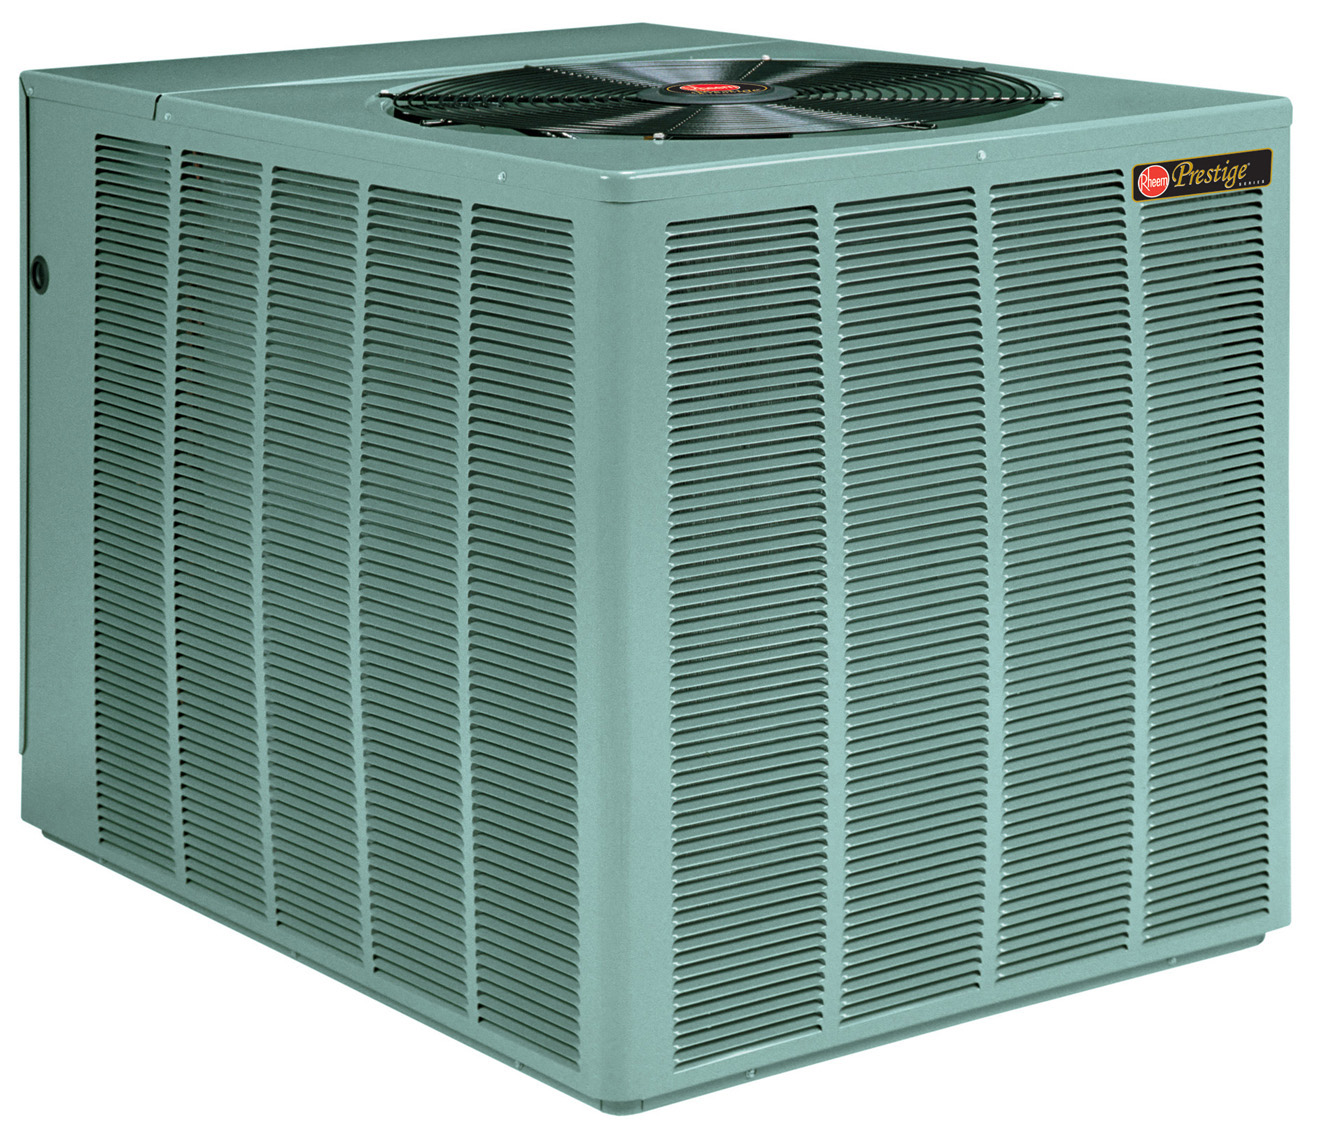 #AA2D22 Central Air Conditioning Units Wholesale To The Public We  Most Effective 11395 Central Air Condition Units pictures with 1317x1142 px on helpvideos.info - Air Conditioners, Air Coolers and more